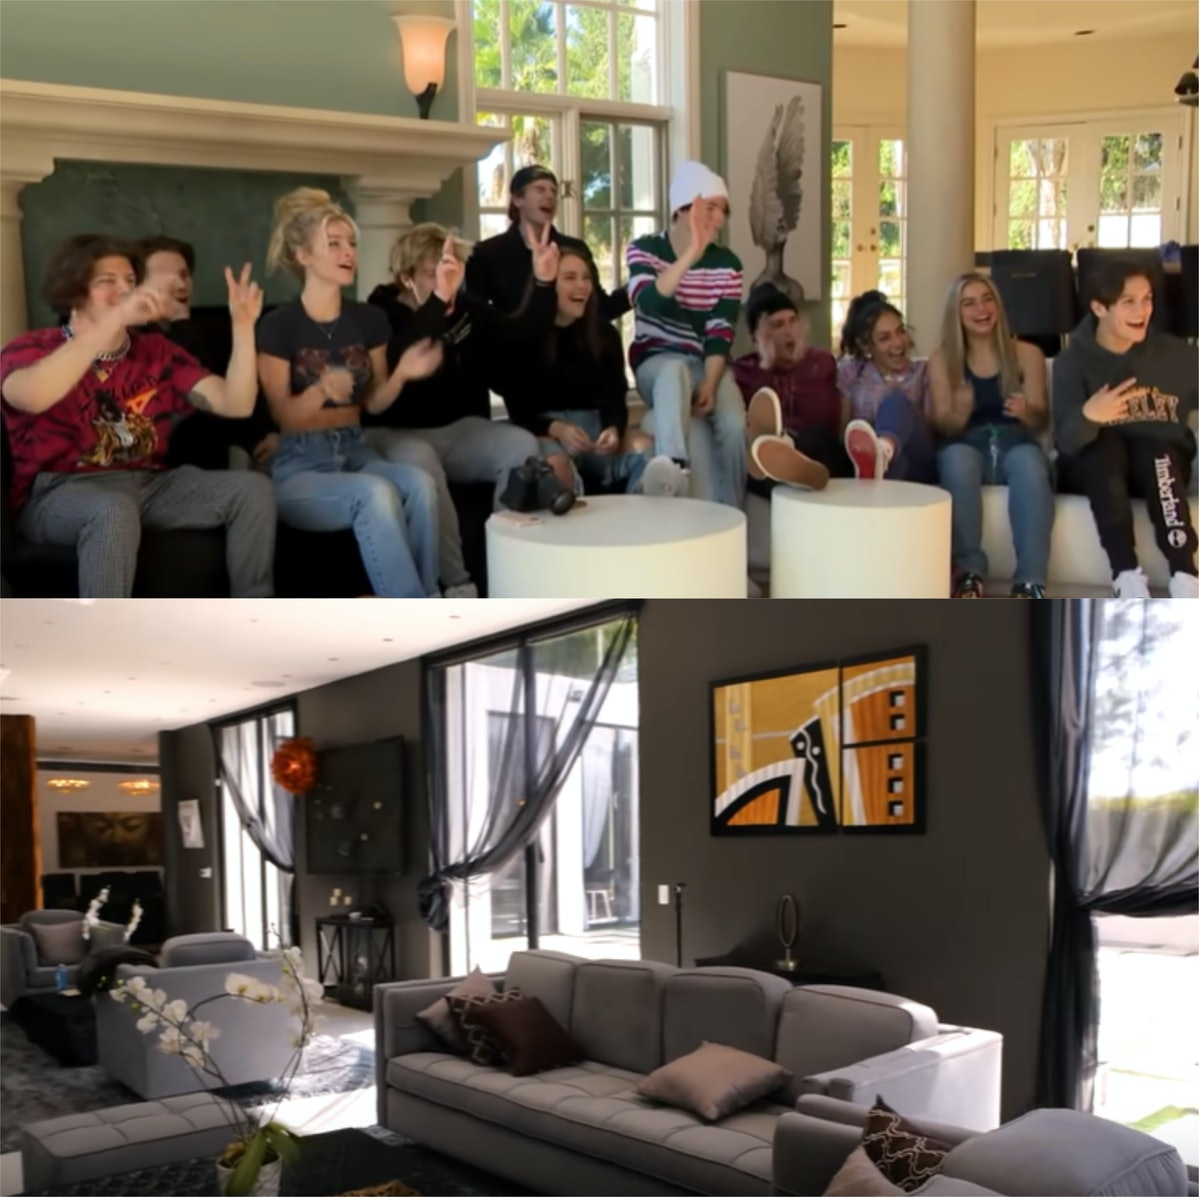 The Hype House Vs. The Clubhouse